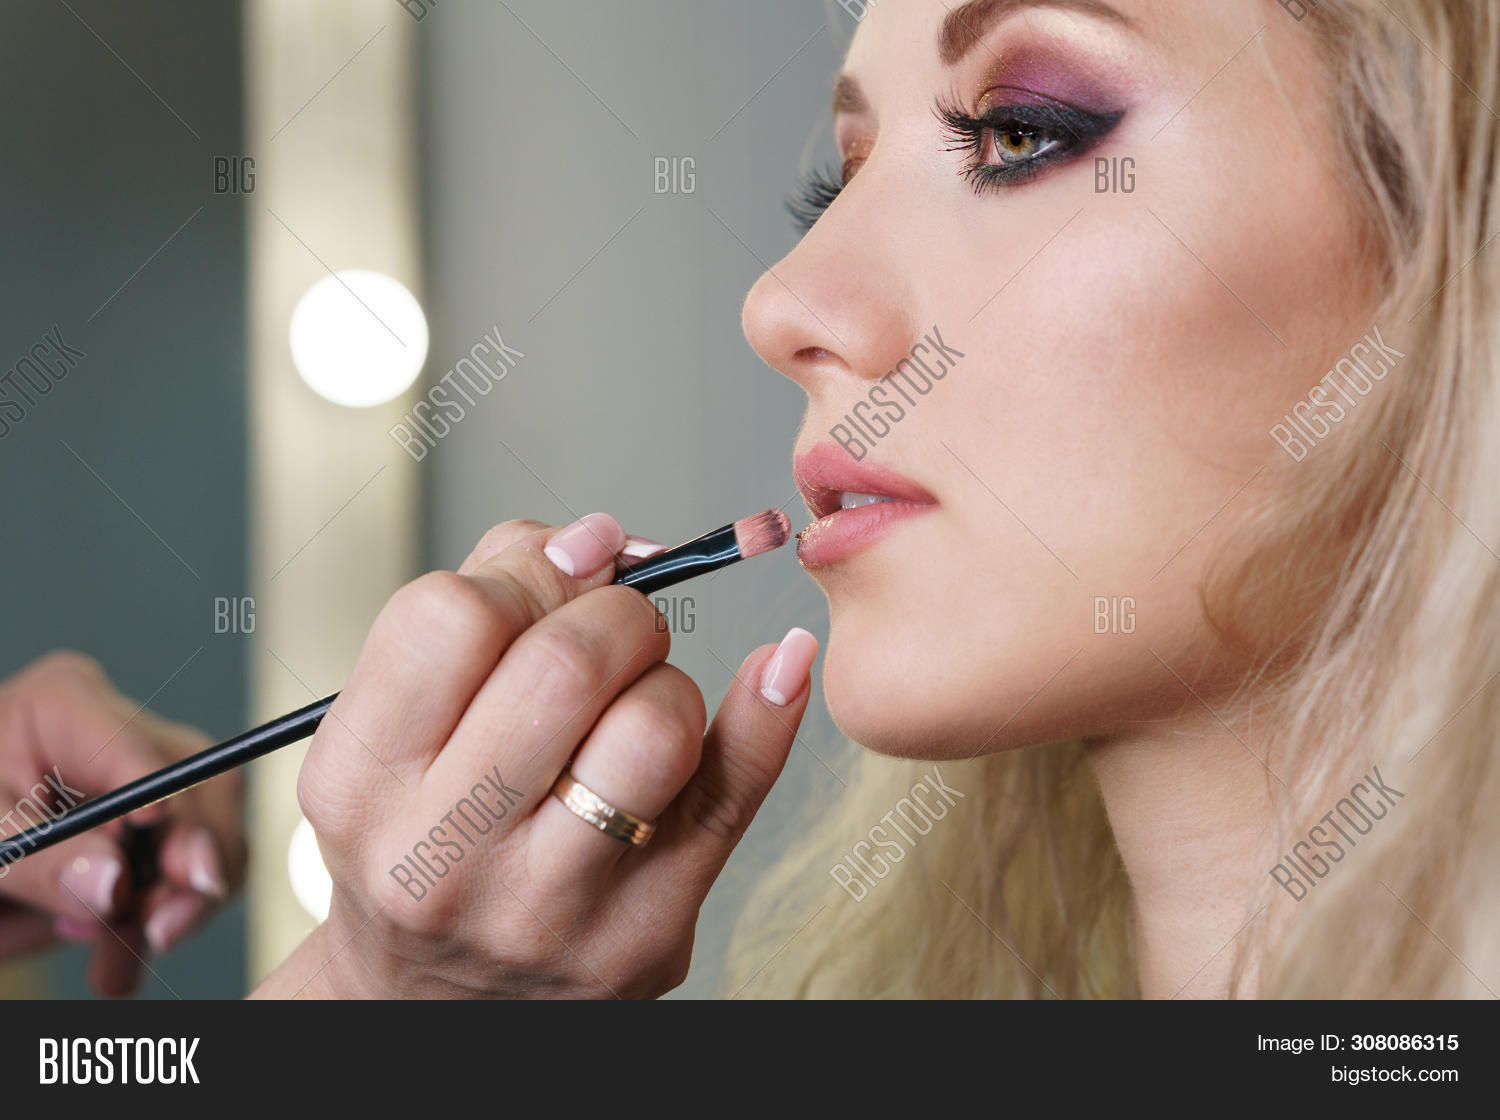 applying,artist,attractive,base,beautician,beautiful,beauty,brush,caucasian,client,cosmetic,cream,eyebrow,face,facial,fashion,female,feminine,girl,hair,hand,highlighter,indoors,lifestyle,make,make-up,makeup,model,mua,natural,occupation,people,portrait,preparation,pretty,product,professional,service,sexy,studio,style,styling,stylist,up,woman,work,young